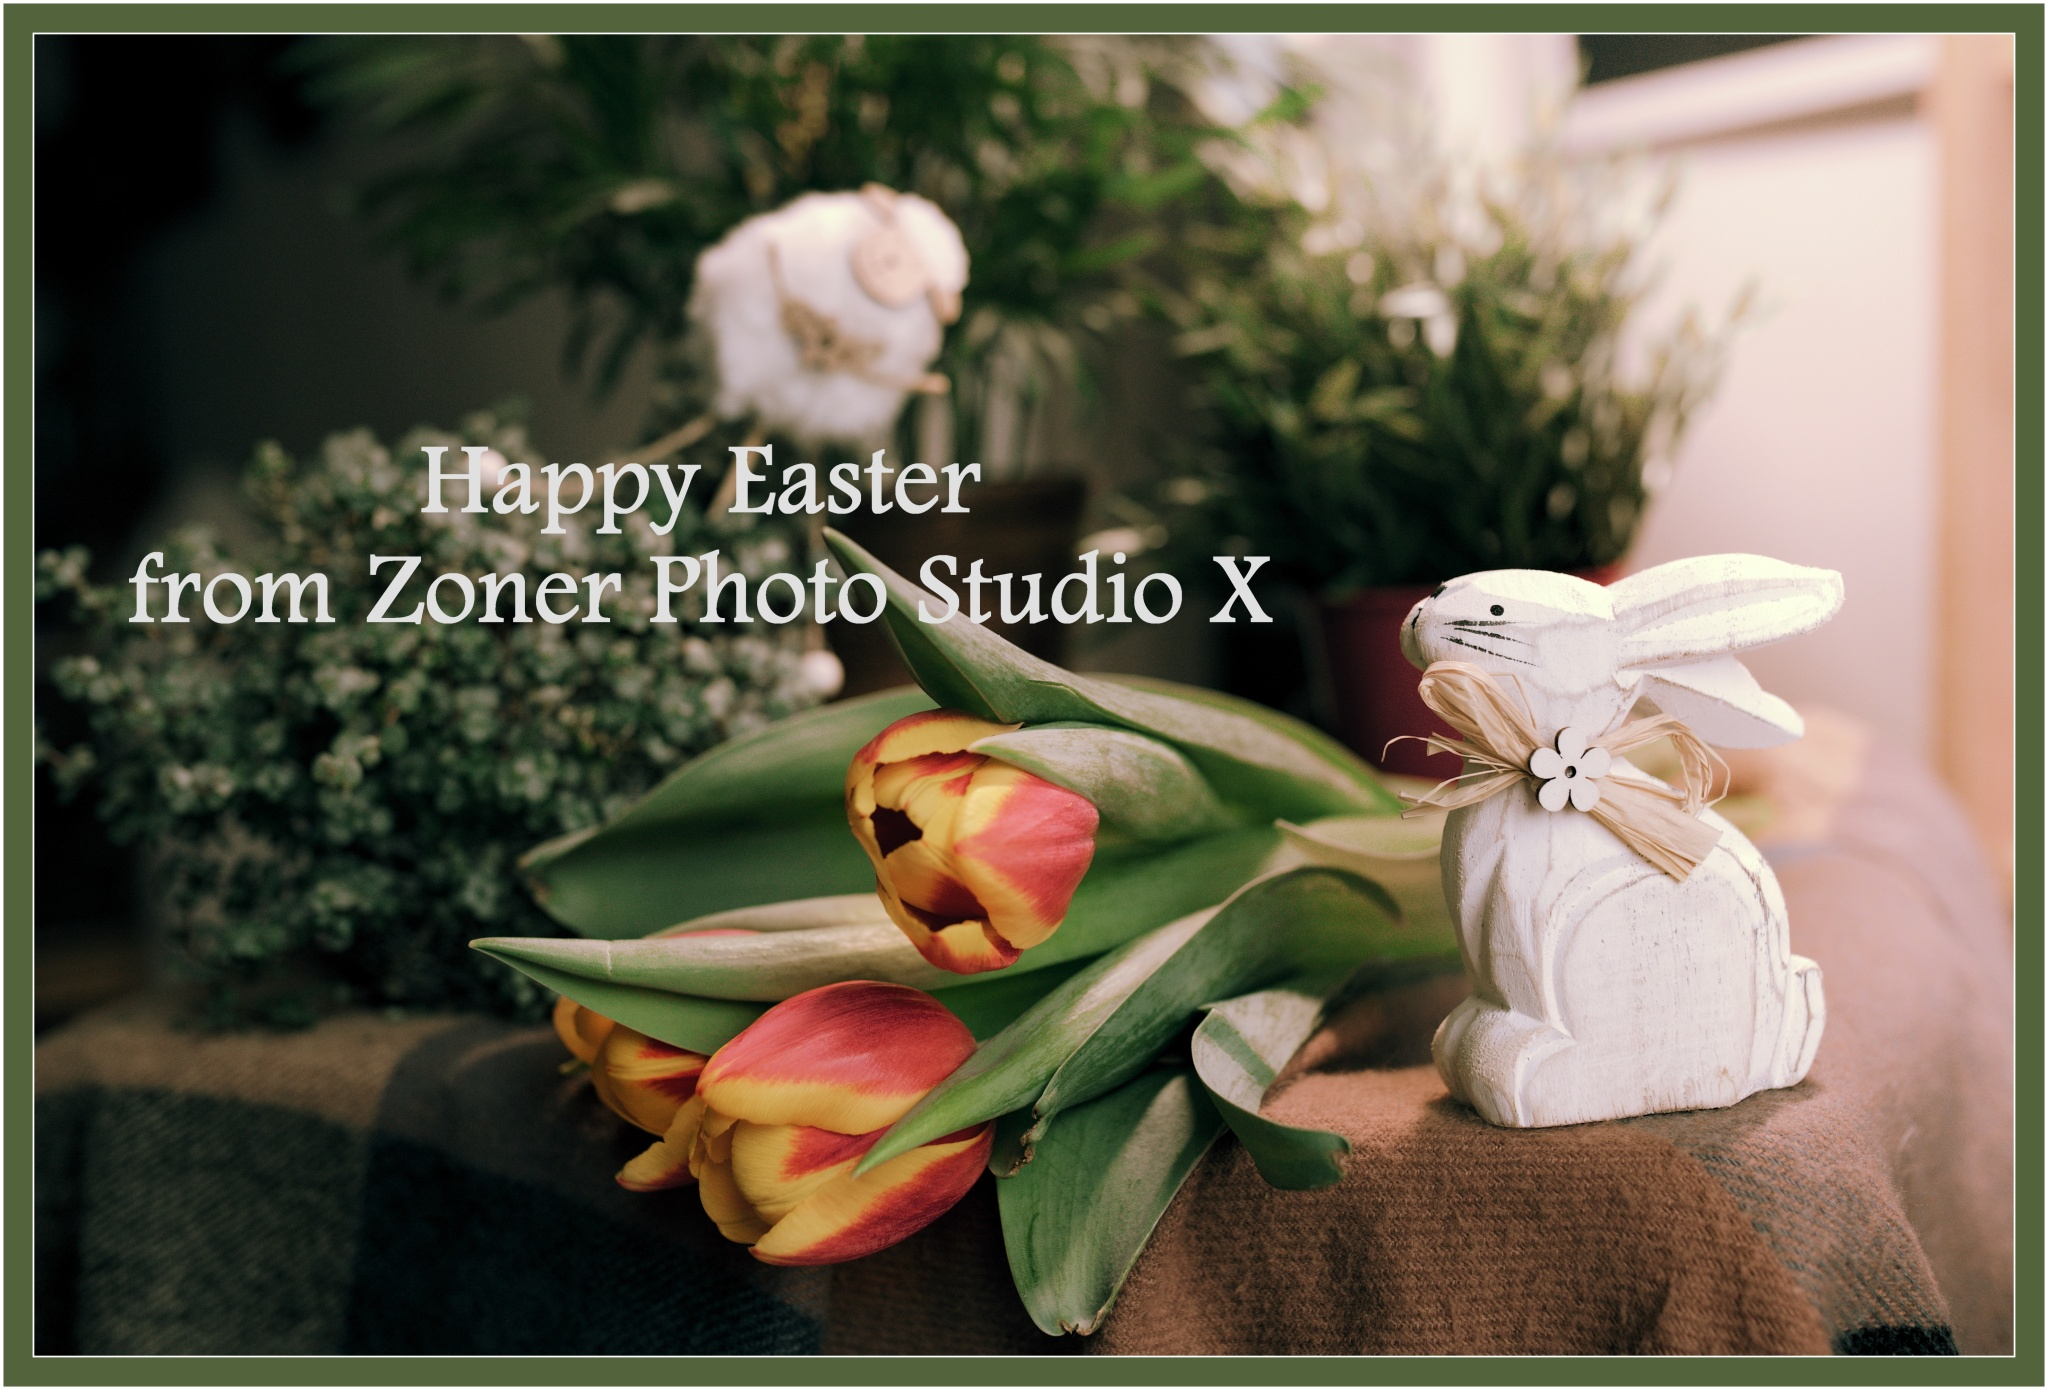 Make an Easter Greeting Card with Your Own Photos